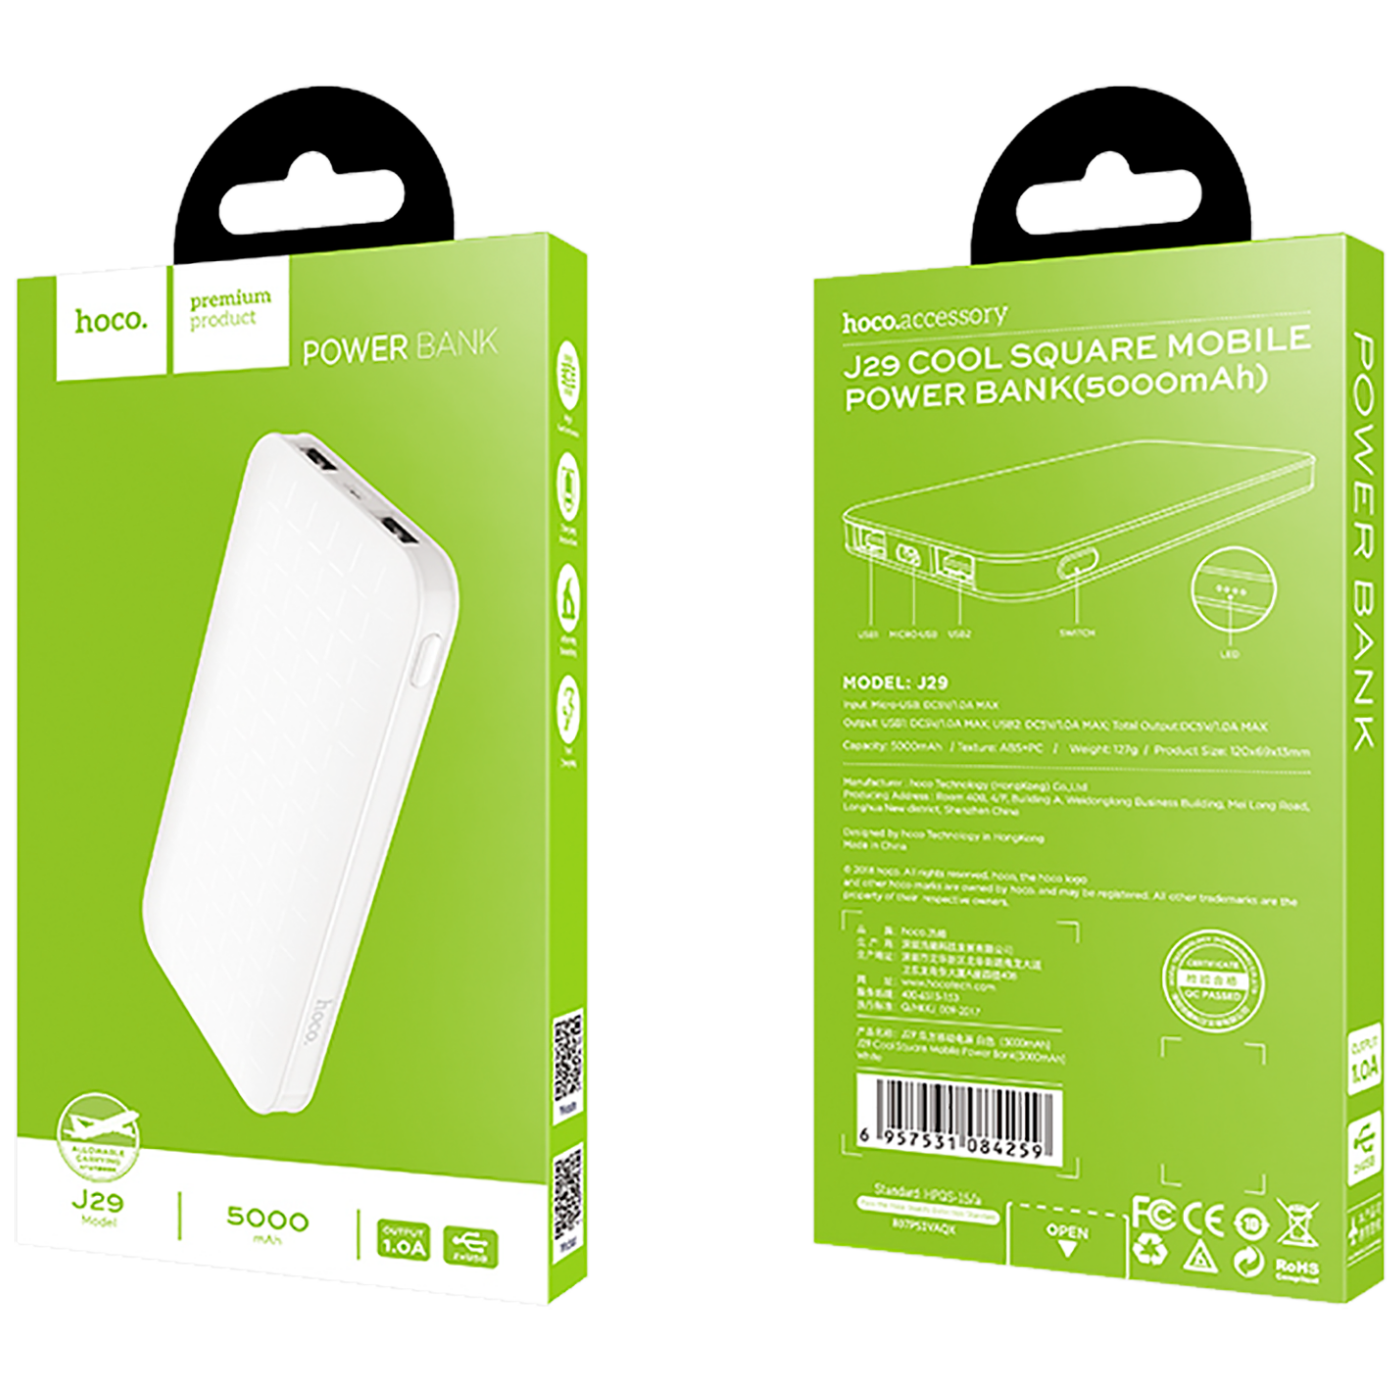 J29 Cool Square Power Bank